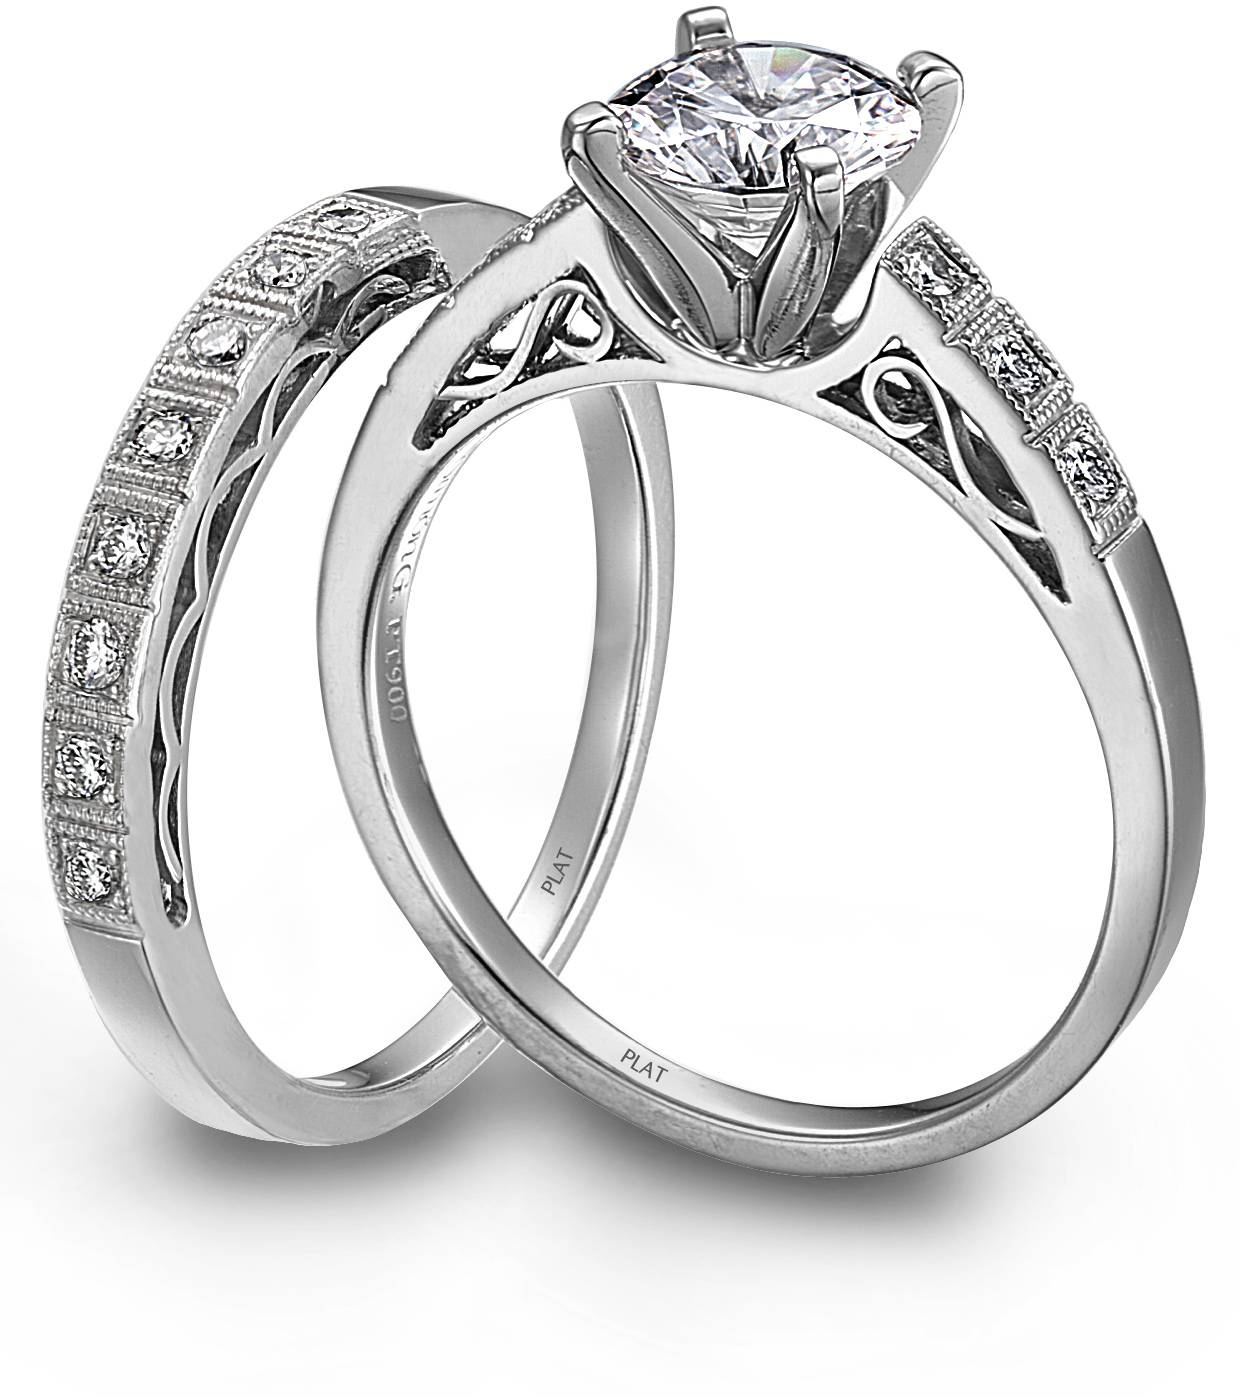 Wedding Rings : Engagement Rings Set Diamond Bridal Ring Sets Regarding Engagement Marriage Rings (View 7 of 15)